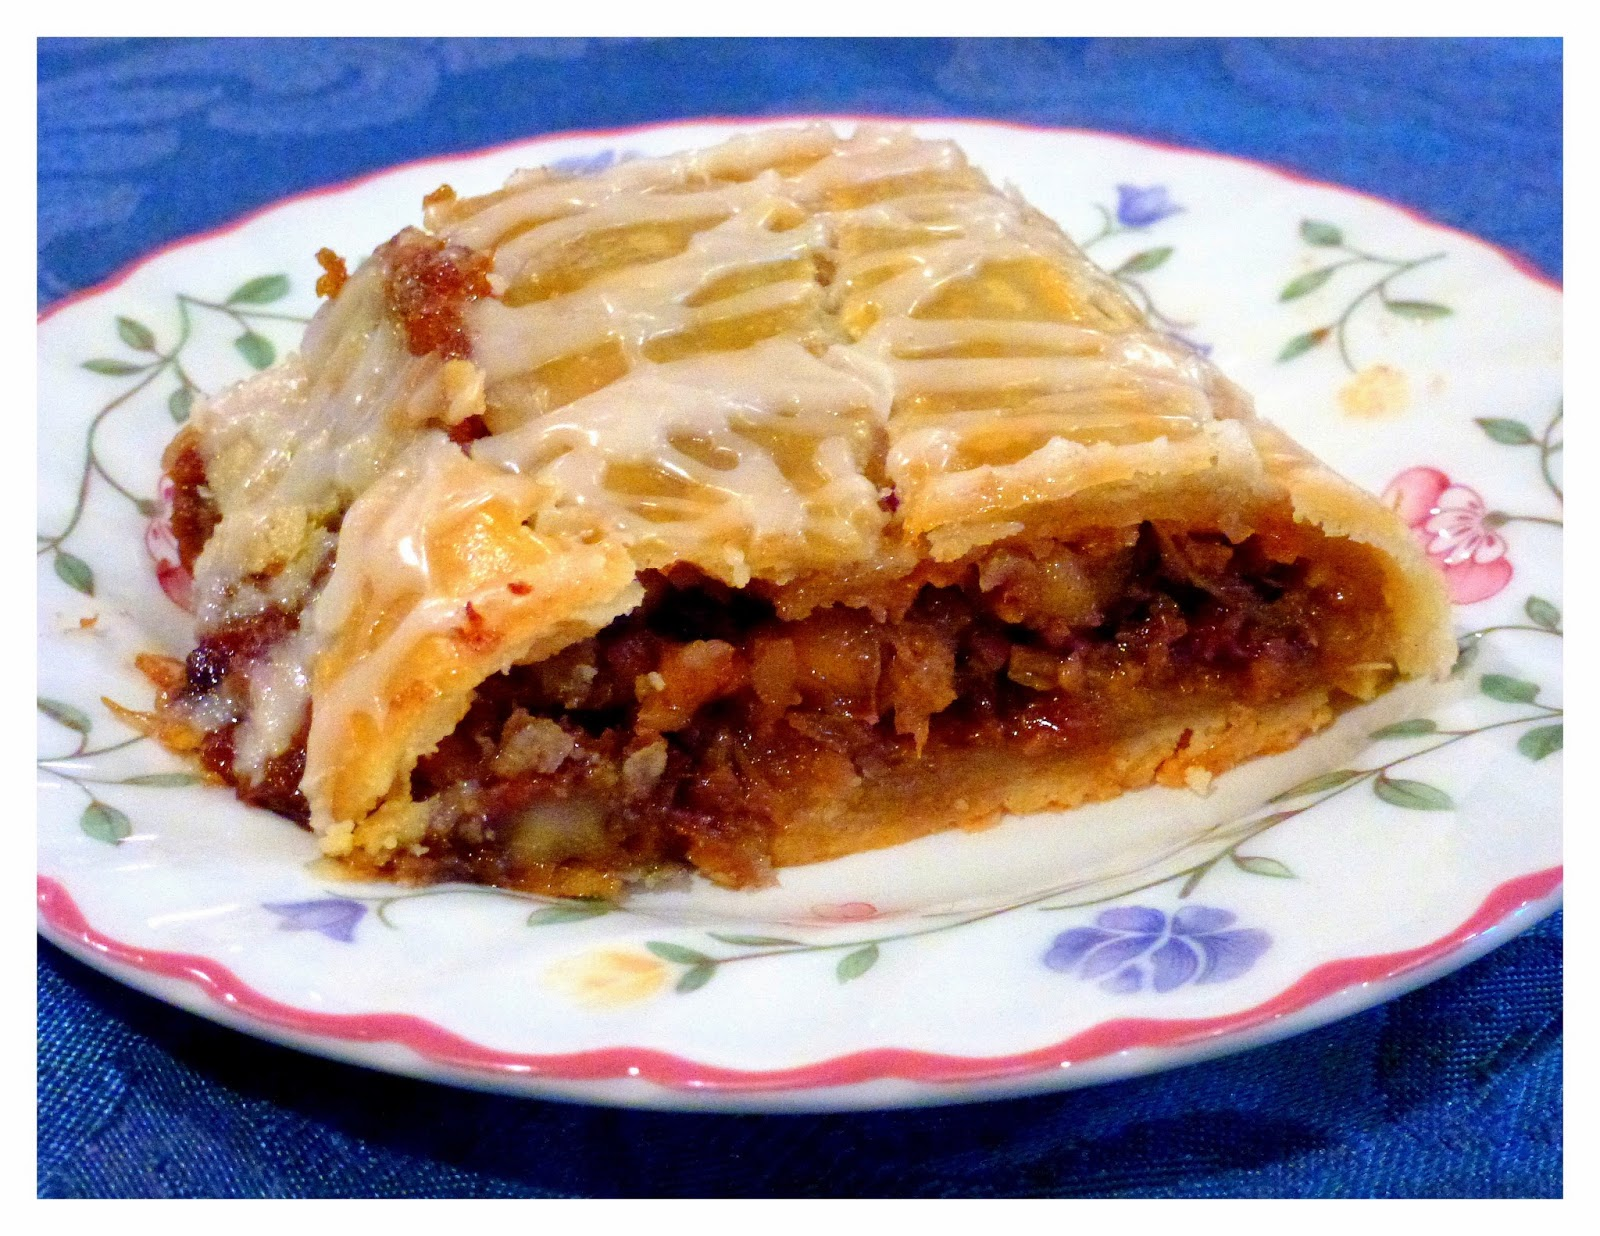 Mennonite Girls Can Cook: Rhubarb Pie Roll- Flashback Friday